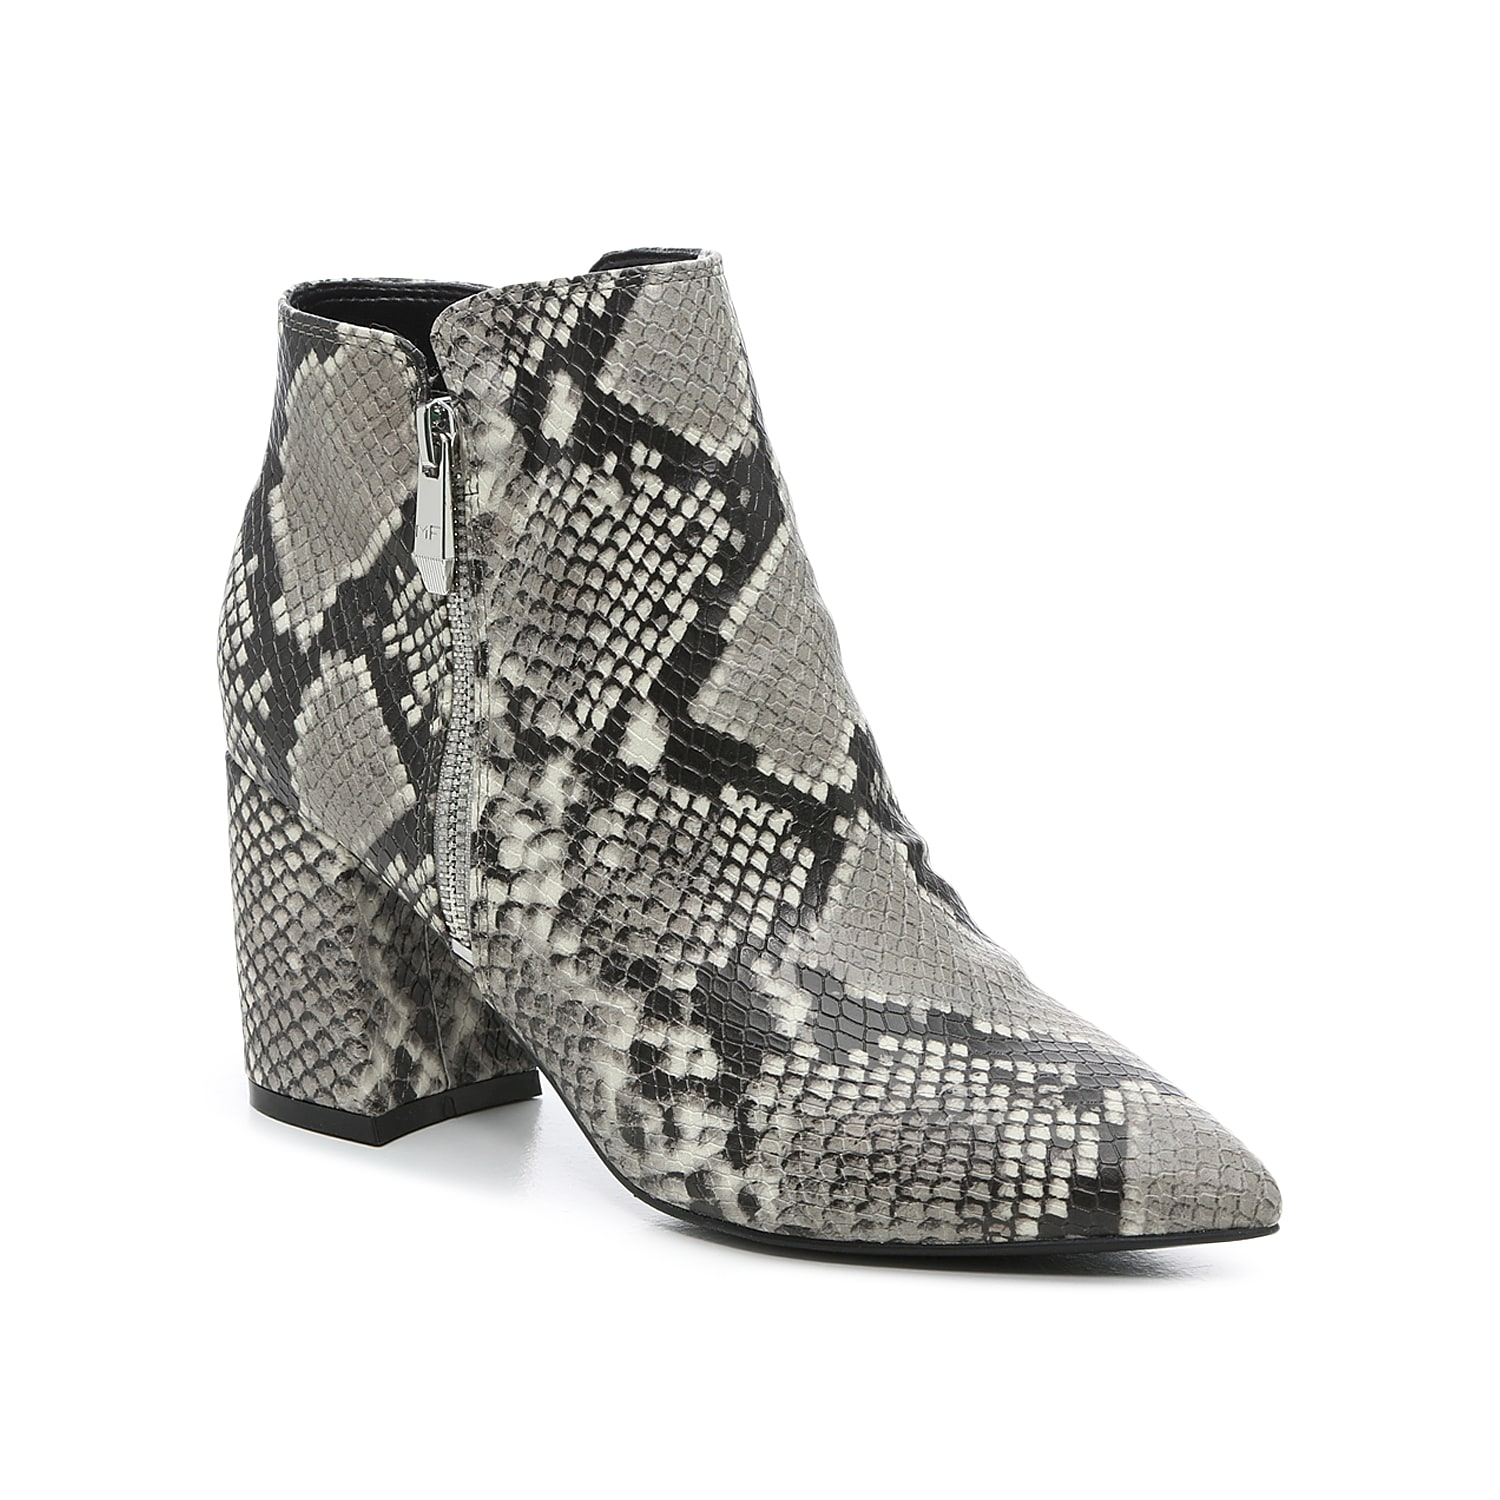 The Raila bootie from Marc Fisher infuses elegance and poise into your ankle boot collection. These boots are fashioned with all-over embossing, dramatic pointed toe, and unique heel that curves inward. Click here for Boot Measuring Guide.